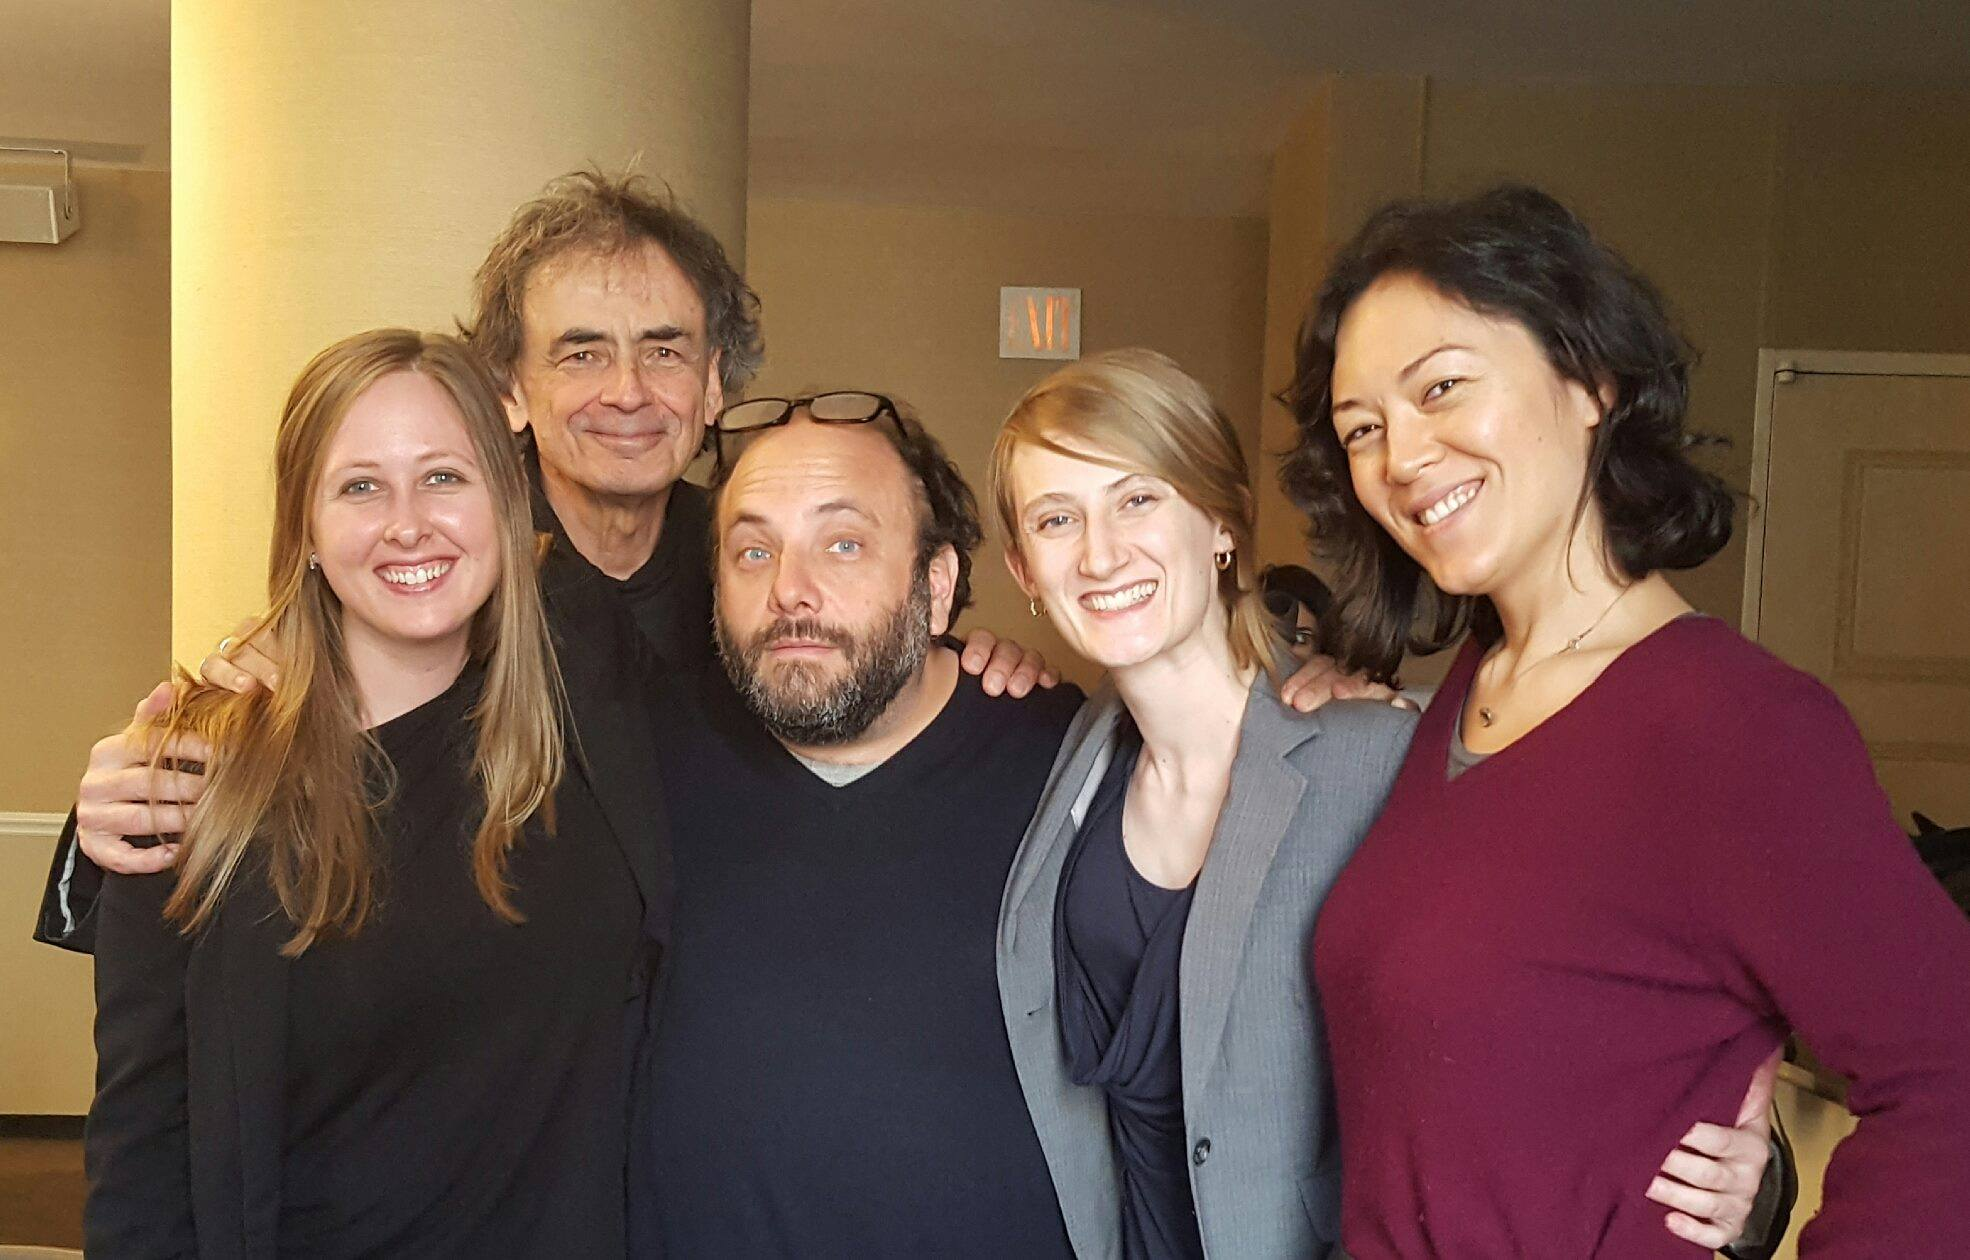 The Parhelion Trio after working with the New York Philharmonic Young Composers.  Left to Right: Ashleé Miller, Jon Deak, Daniel Felsenfeld, Andrea Christie, and Sarah Carrier.